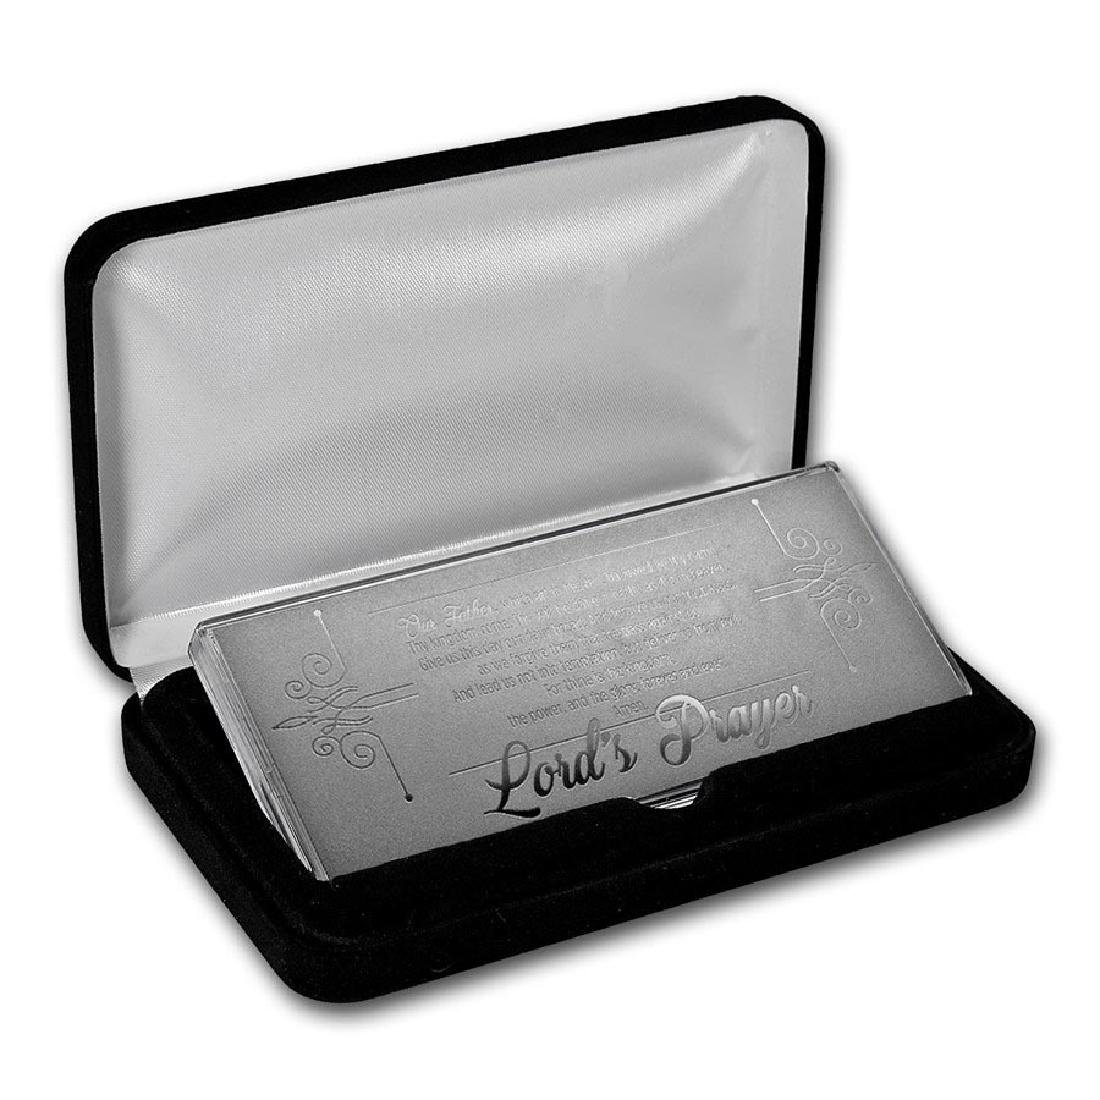 4 oz Silver Bar - The Lord's Prayer